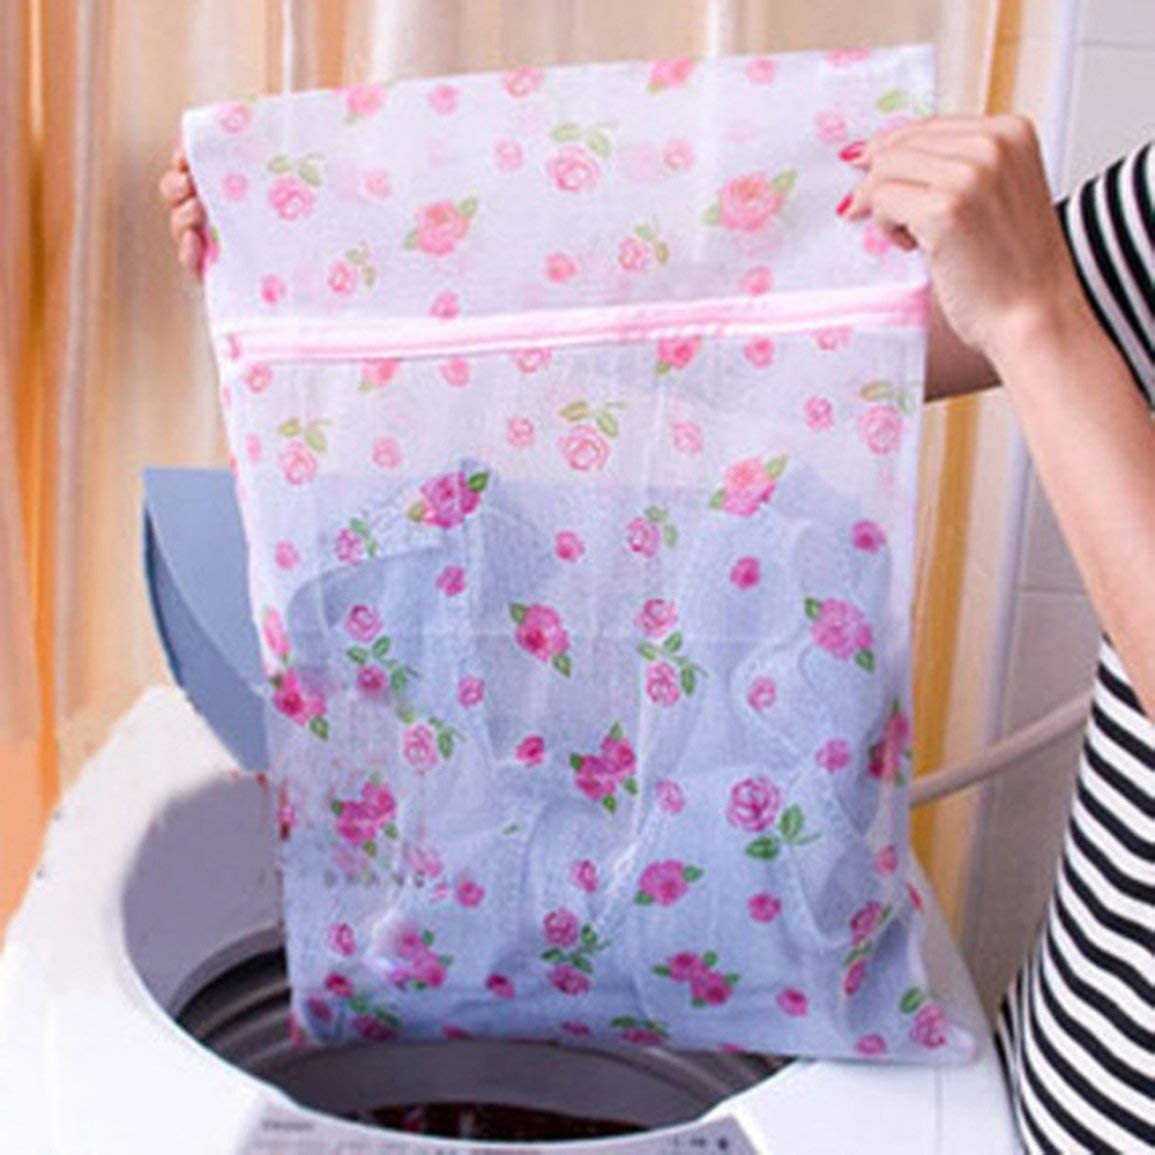 Portable Size Household Cleaning Tool Laundry Wash Bags Zipper Type Lingerie Bra Socks Underwear Mesh Bag Wash Care Bags